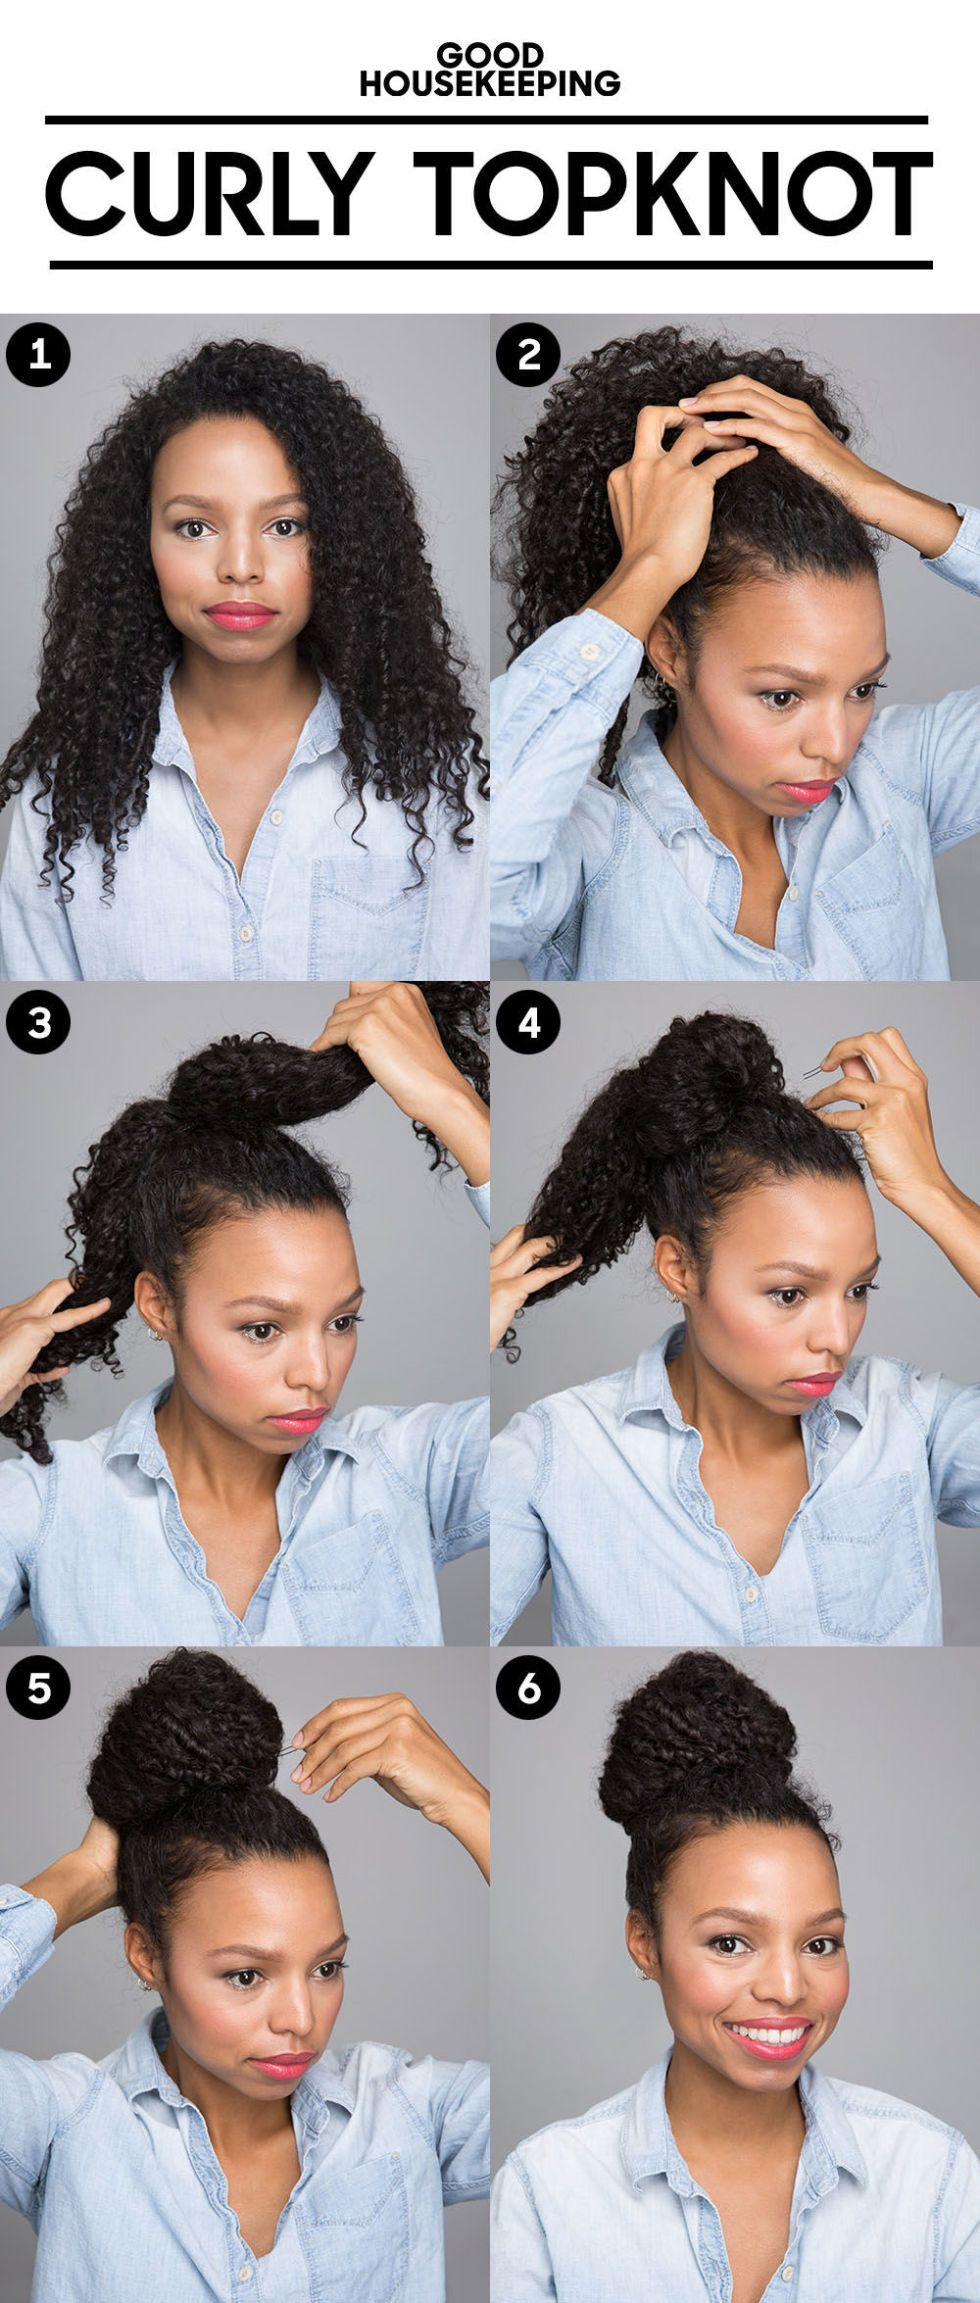 Curly Hair Tips trend hairstyle now